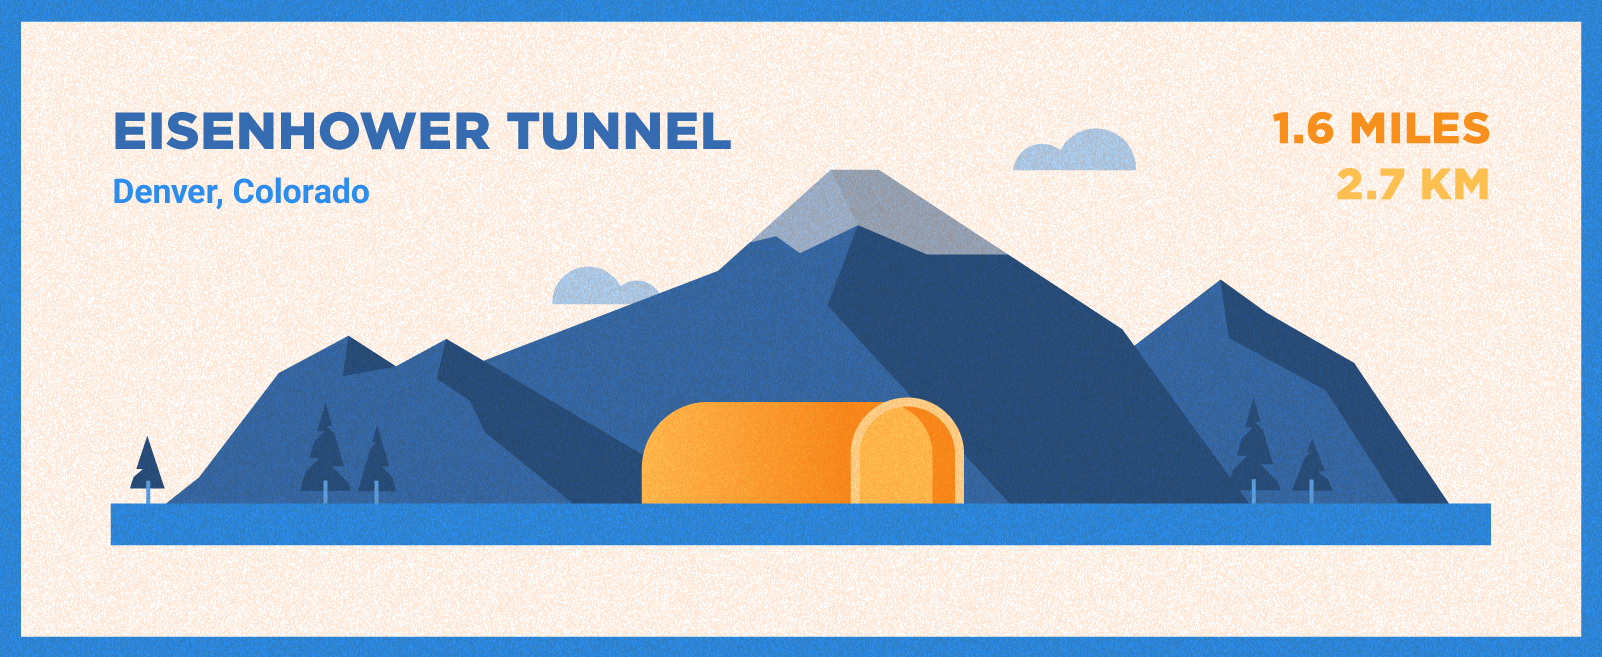 Eisenhower Tunnel is 1.6 miles long and located in Denver, Colorado.